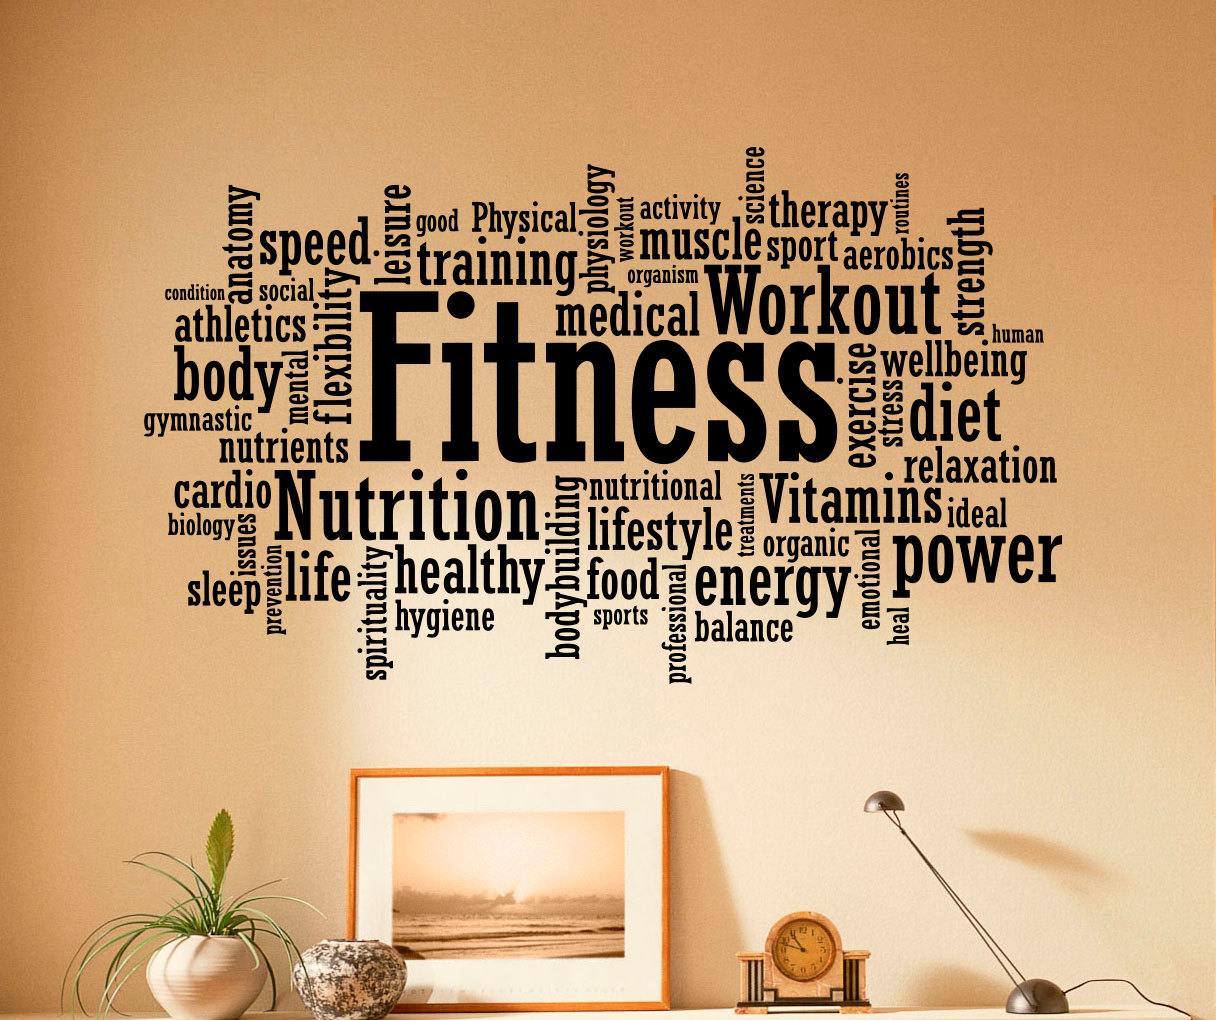 fitness wall decal vinyl stickers sport gym words interior home design art murals wall graphics decor - Wall Graphic Designs